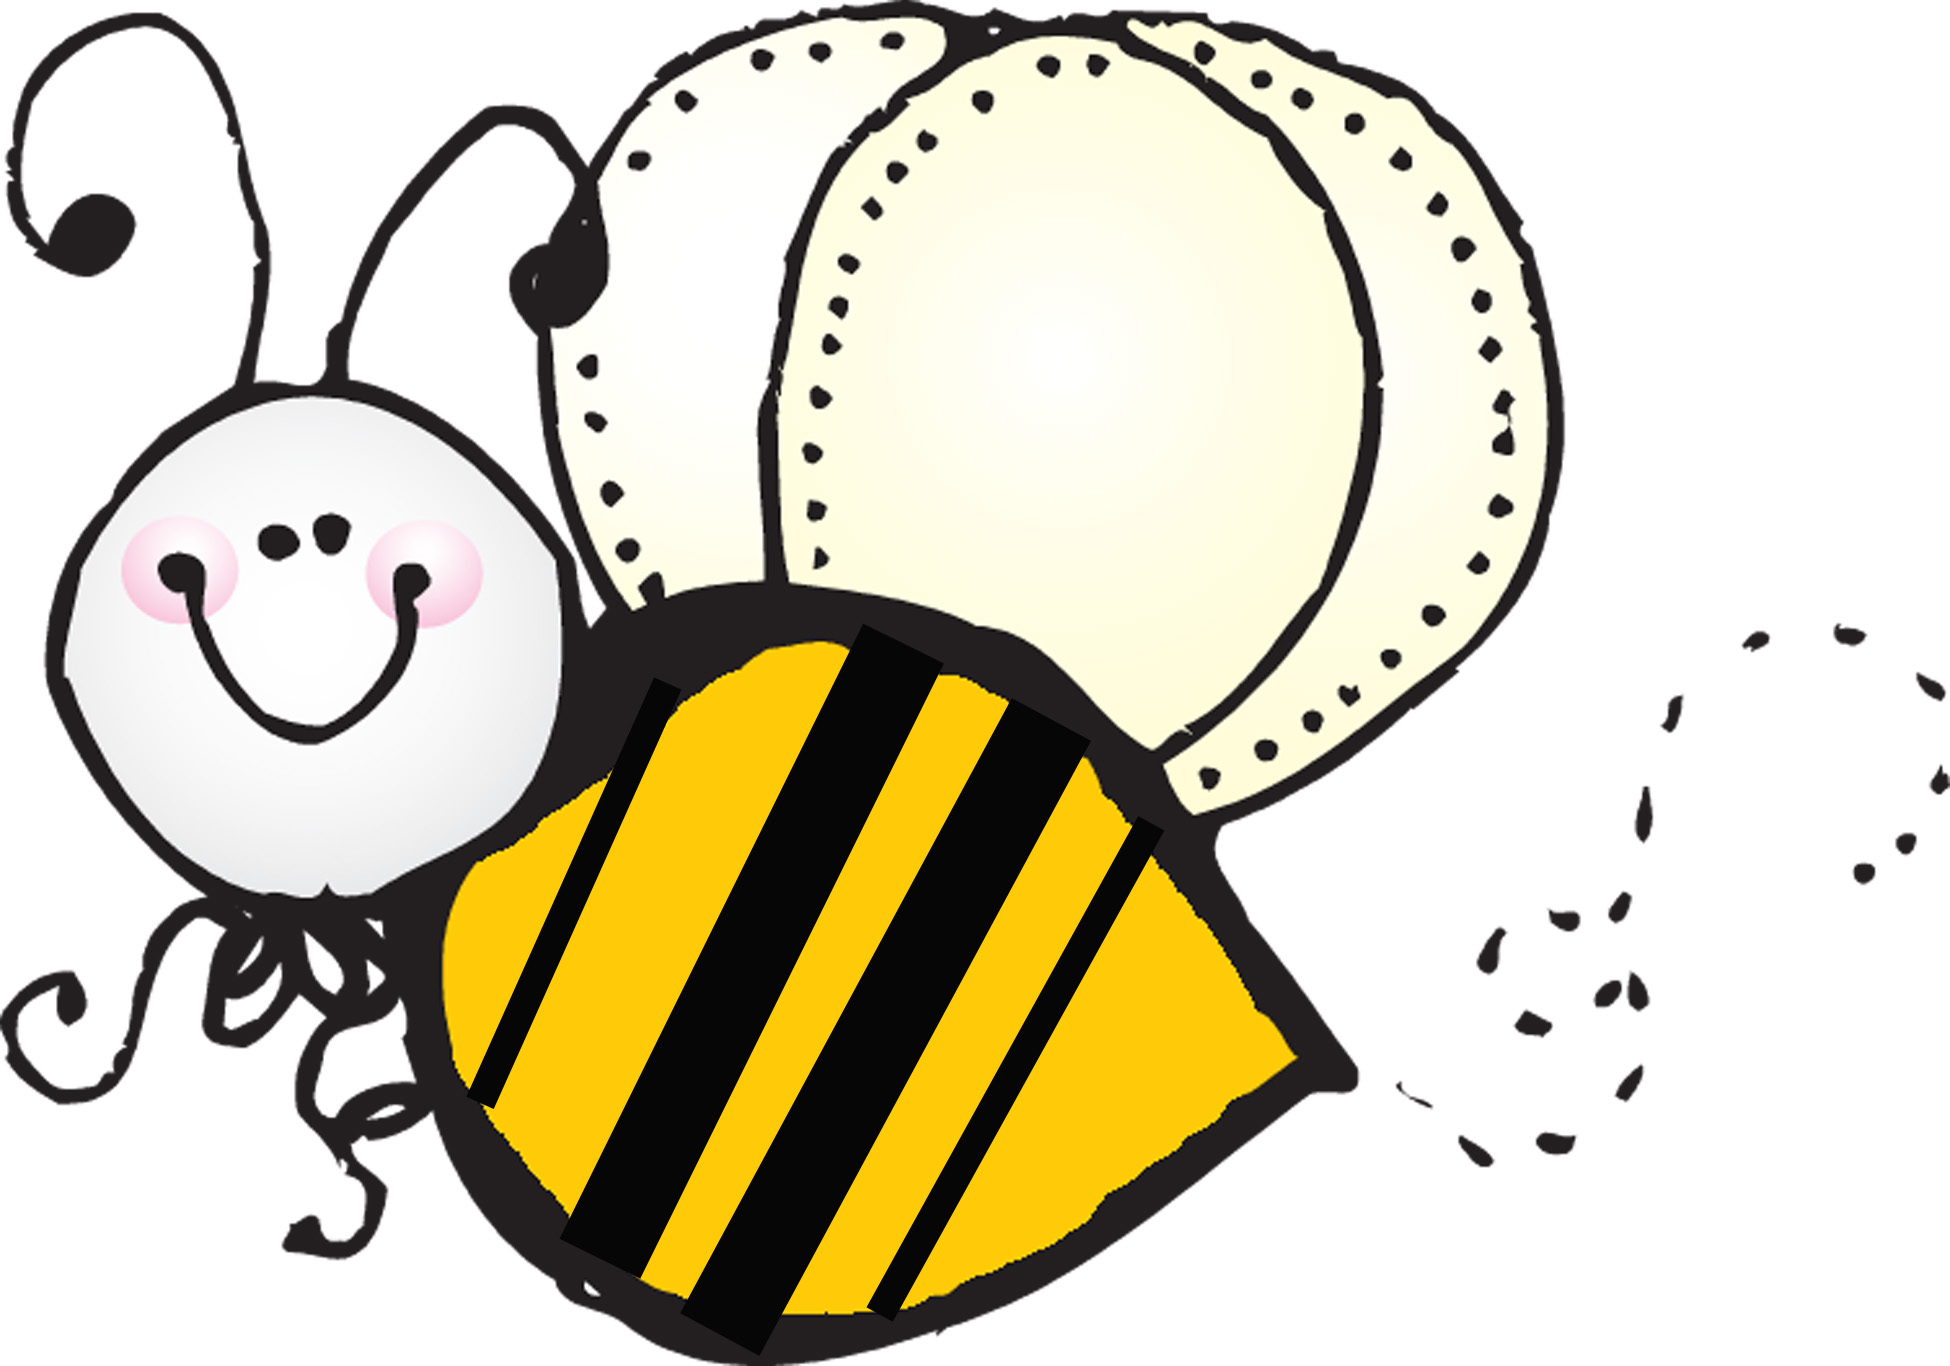 1950x1366 Busy Bees Clip Art Clipart Collection